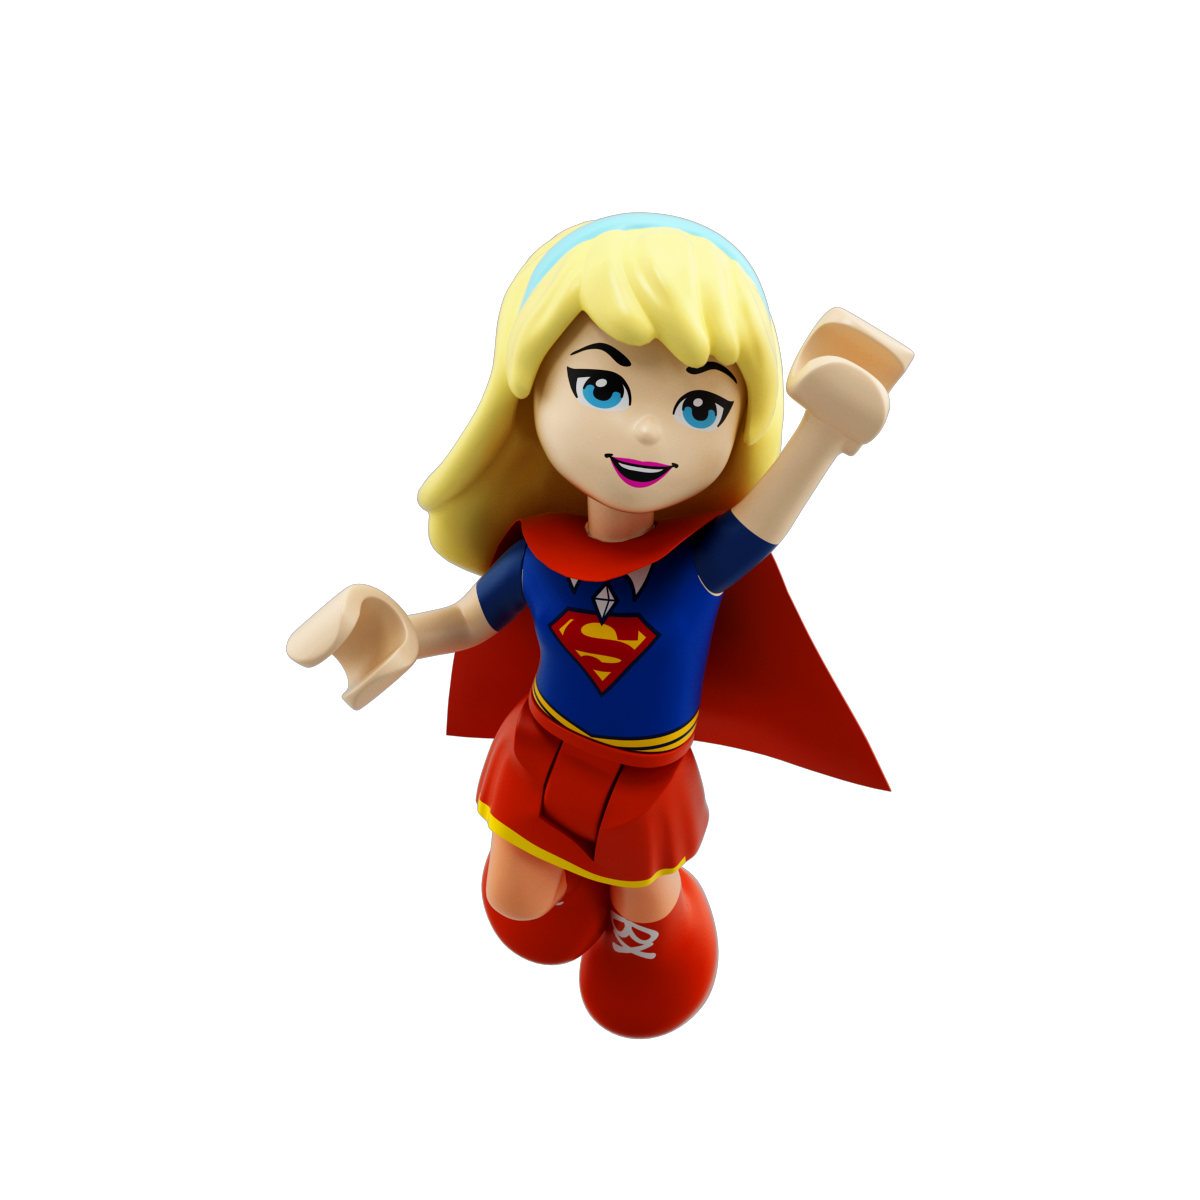 Lego girl png. Supergirl dc super hero